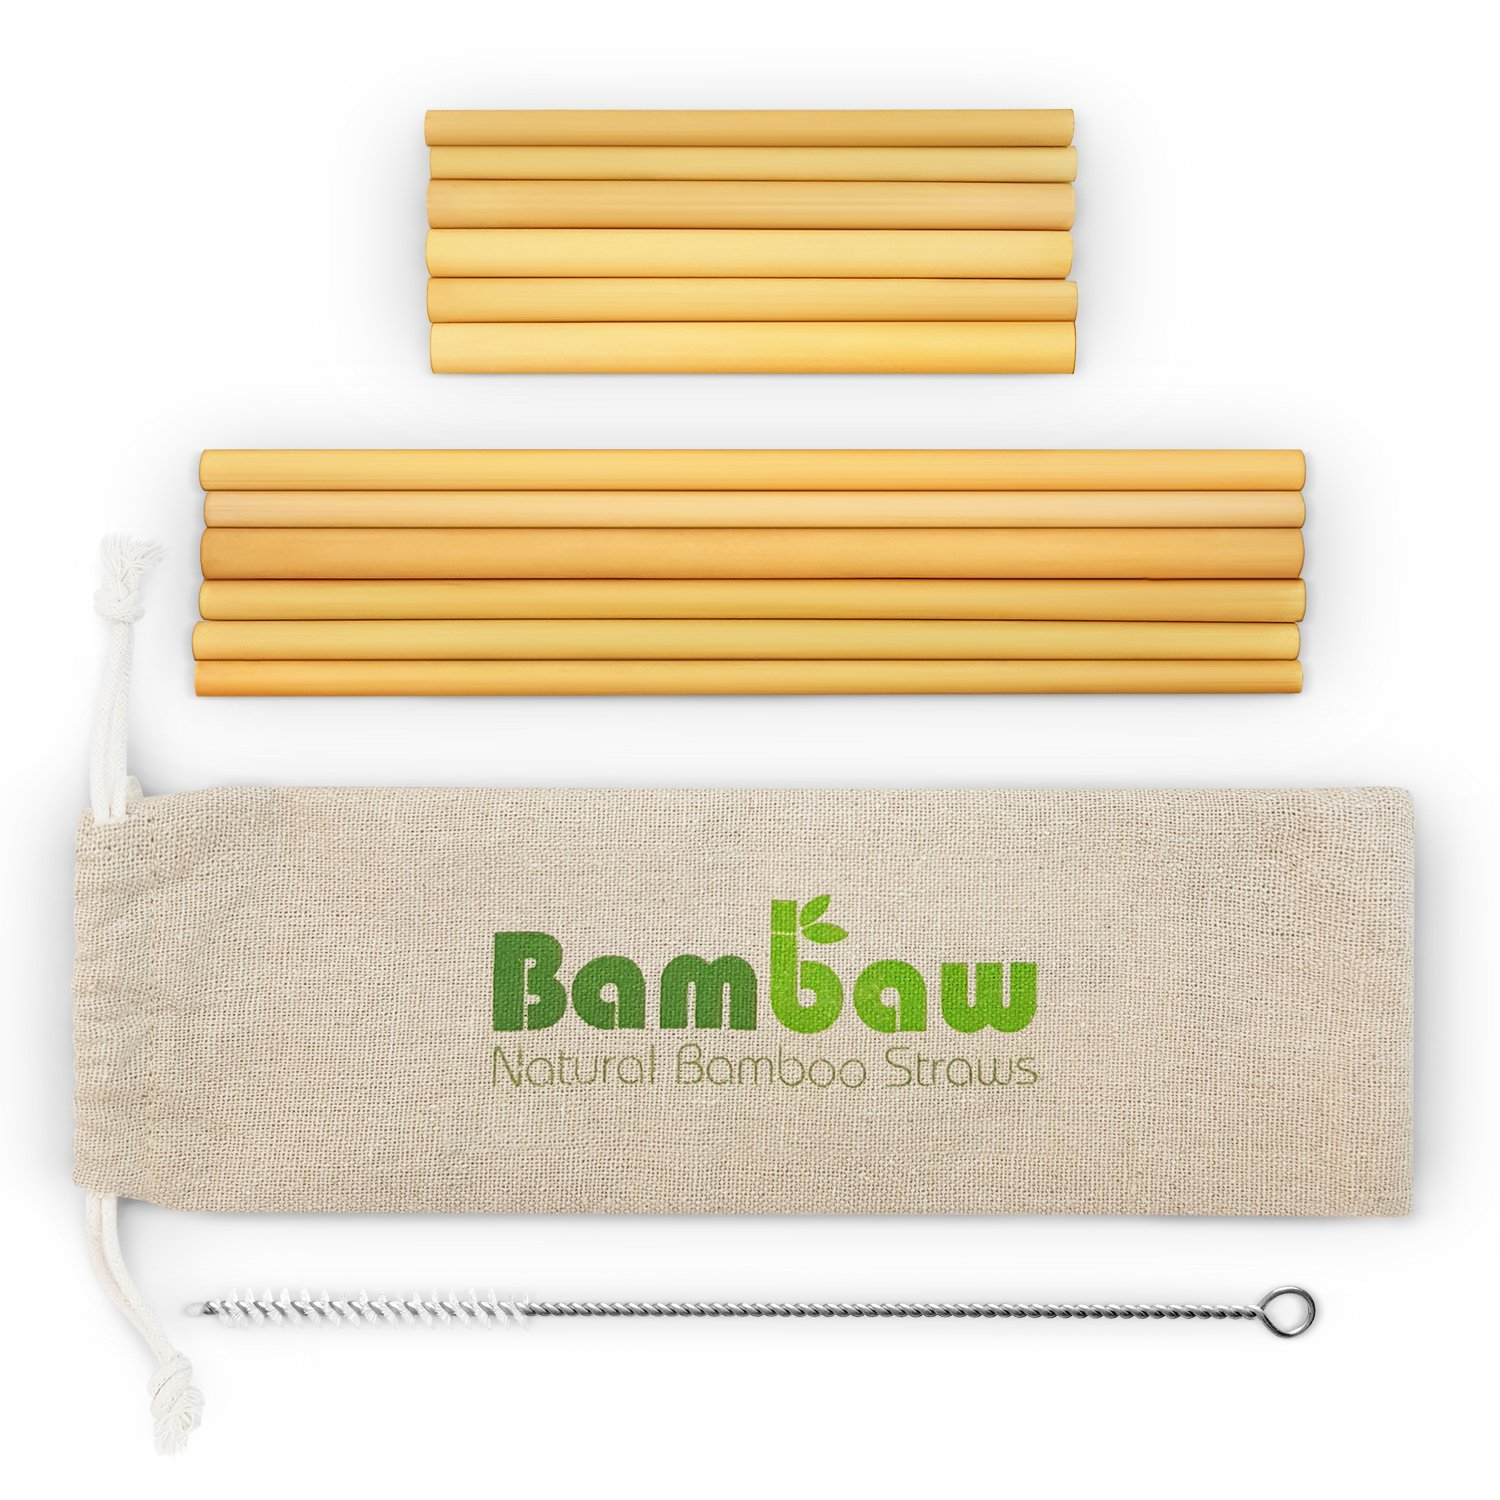 Reusable Bamboo Drinking Straws   BPA free   Ecological Alternative to Plastic straws   Strong & Durable Bamboo multi-usage straw   12 Straws   5.5 and 8.7 Inch   Bambaw